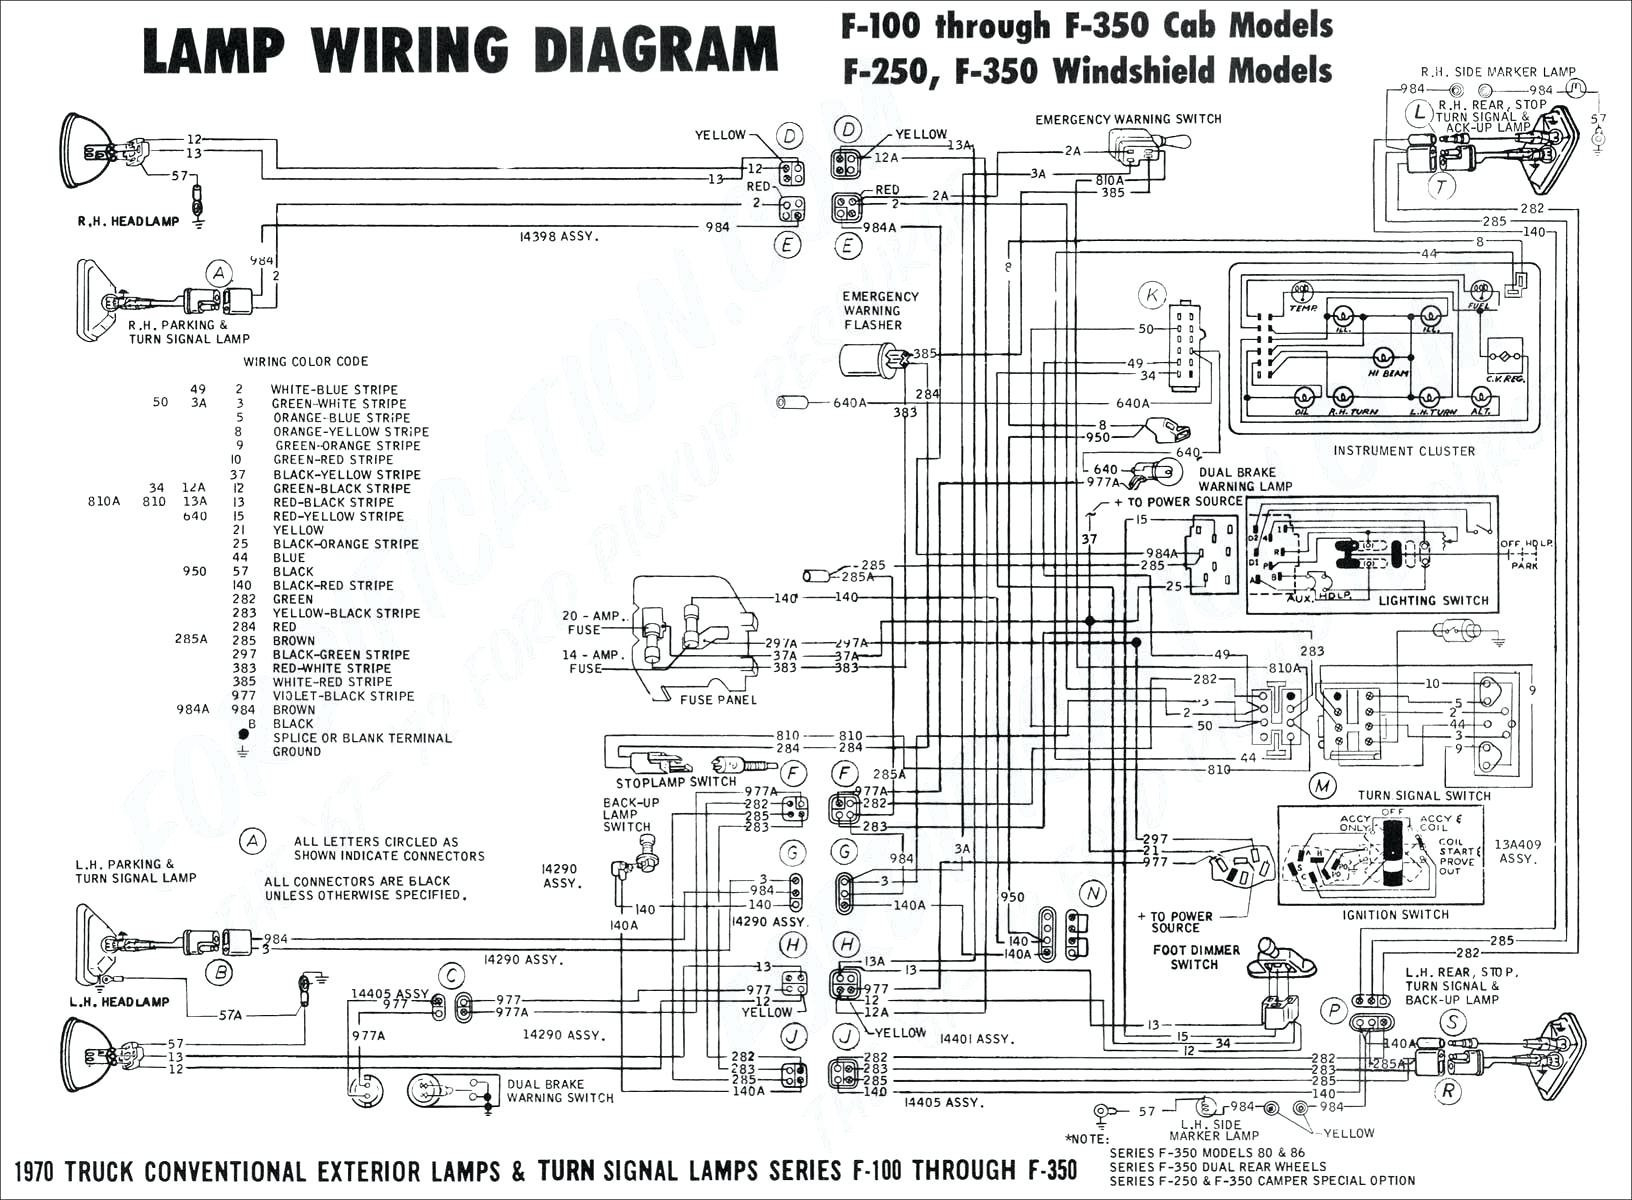 Wiring Diagram 1986 Saab 900 Turbo Ignition Switch | Wiring ... on